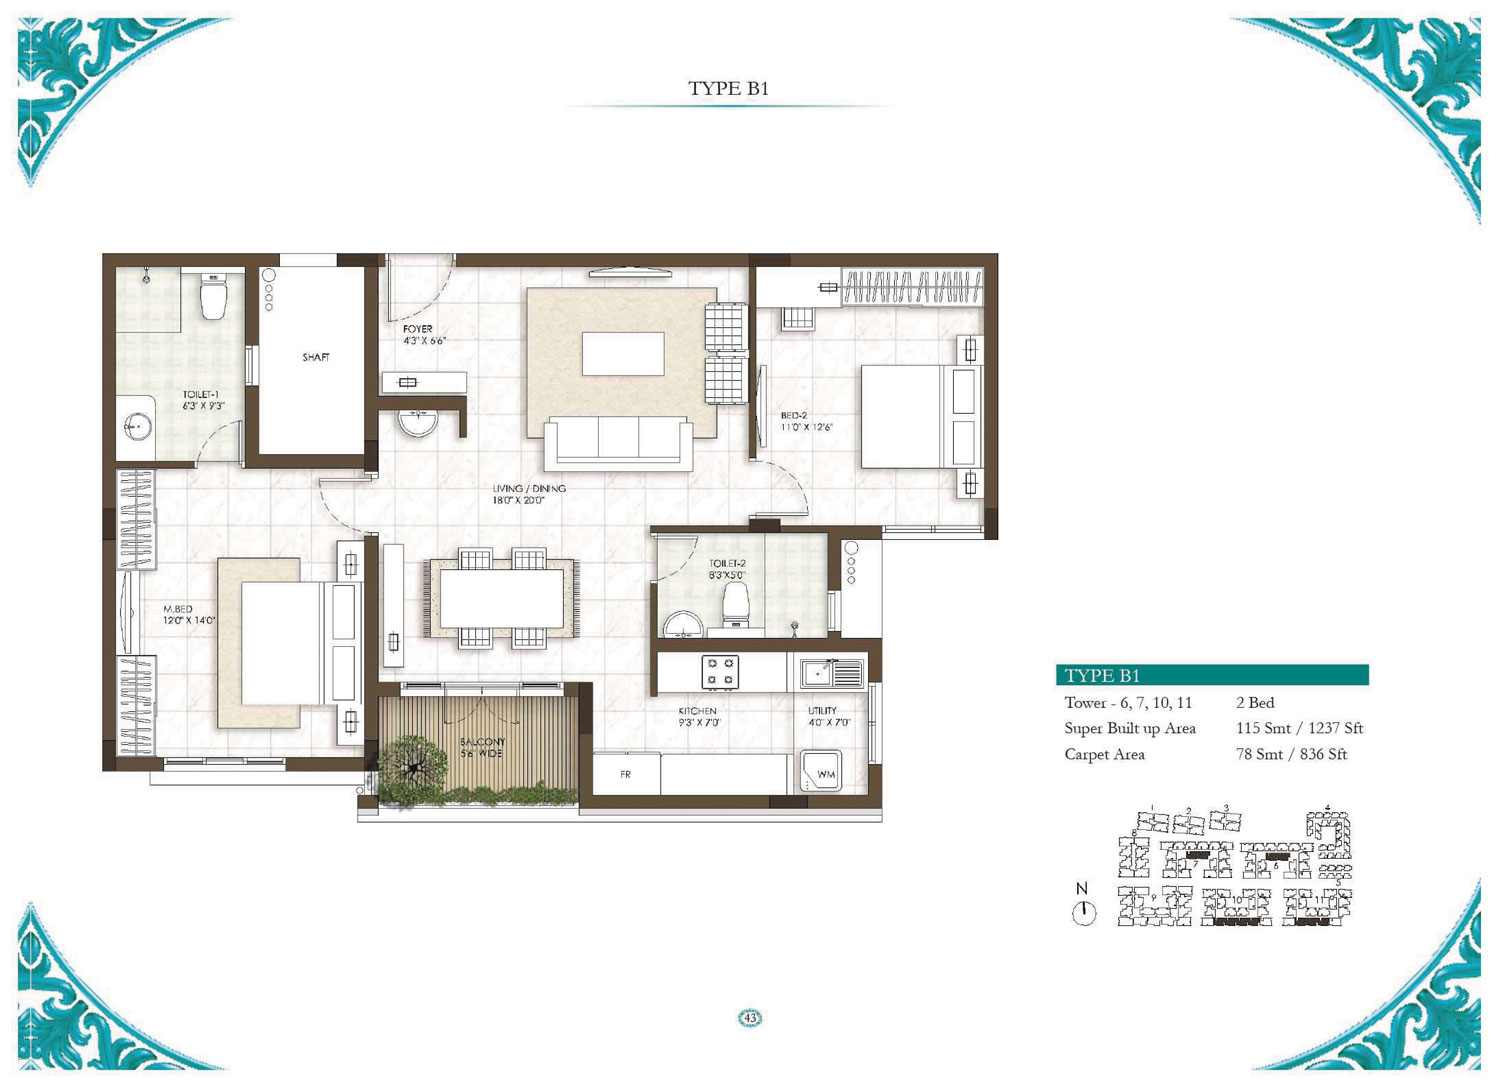 Type B1 - 1 Bed - 1237 Sq Ft